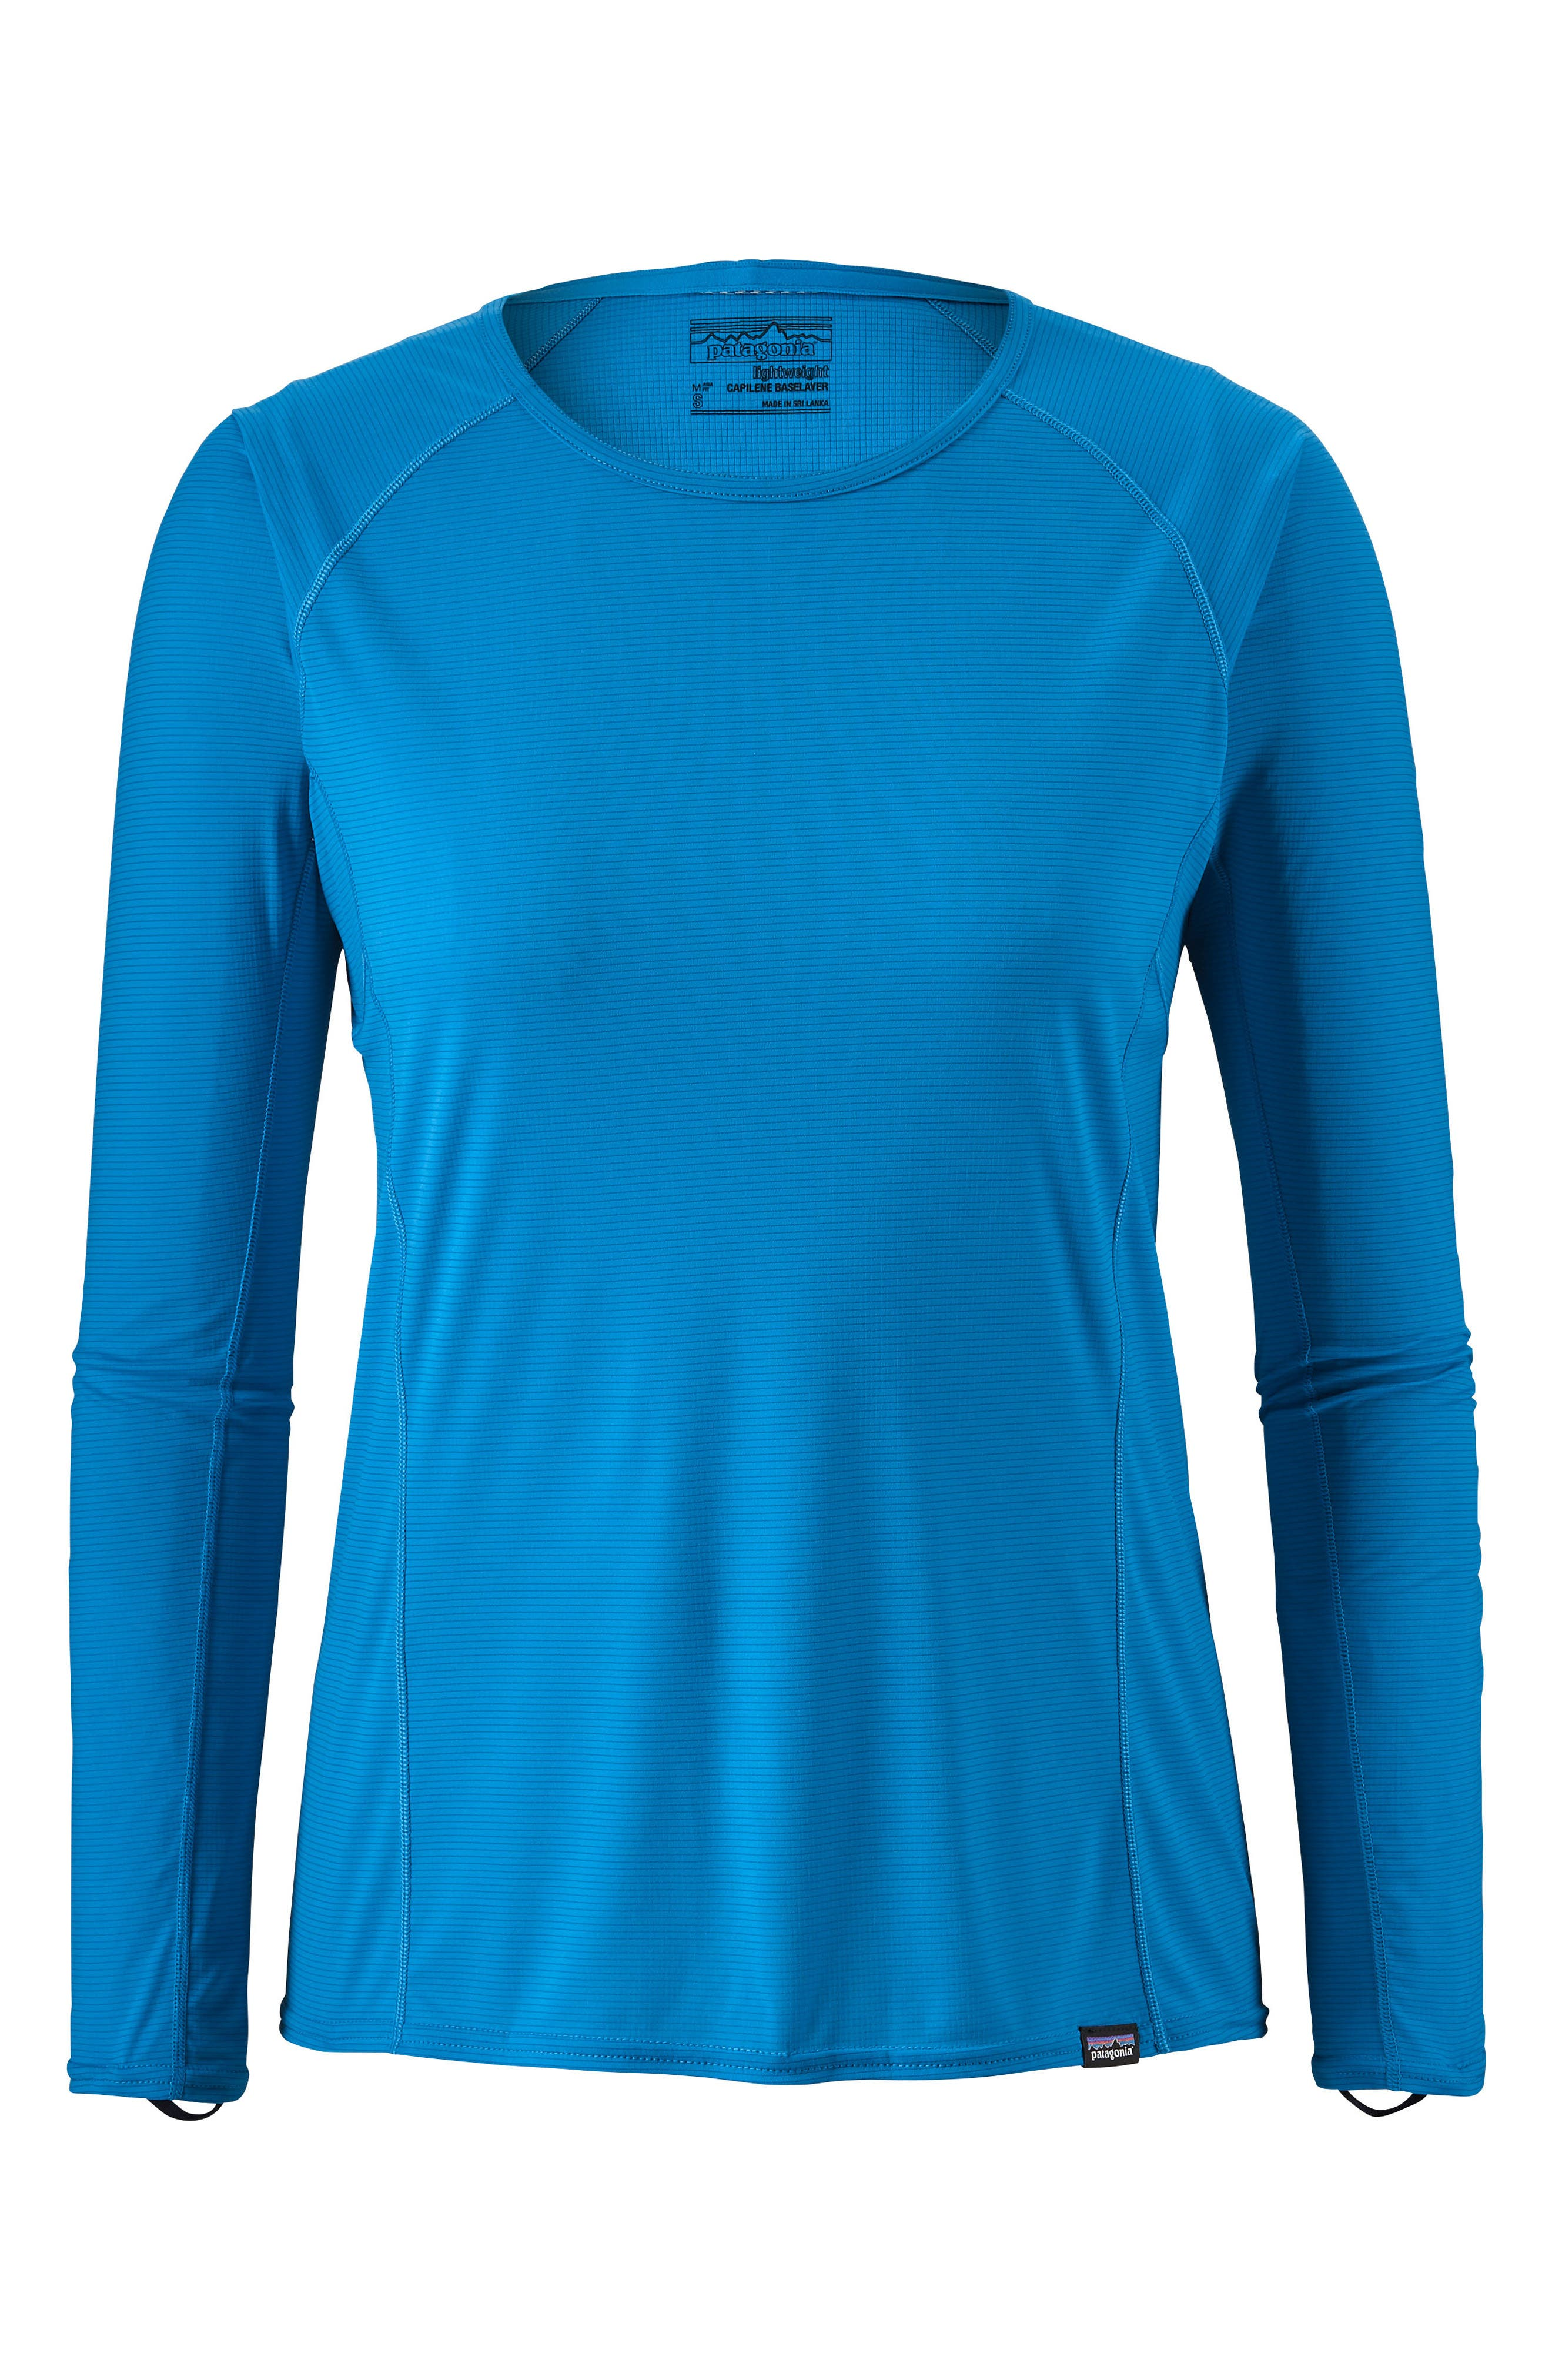 Capilene<sup>®</sup> Thermal Weight Long-Sleeve Tee,                             Main thumbnail 1, color,                             LAPIZ BLUE